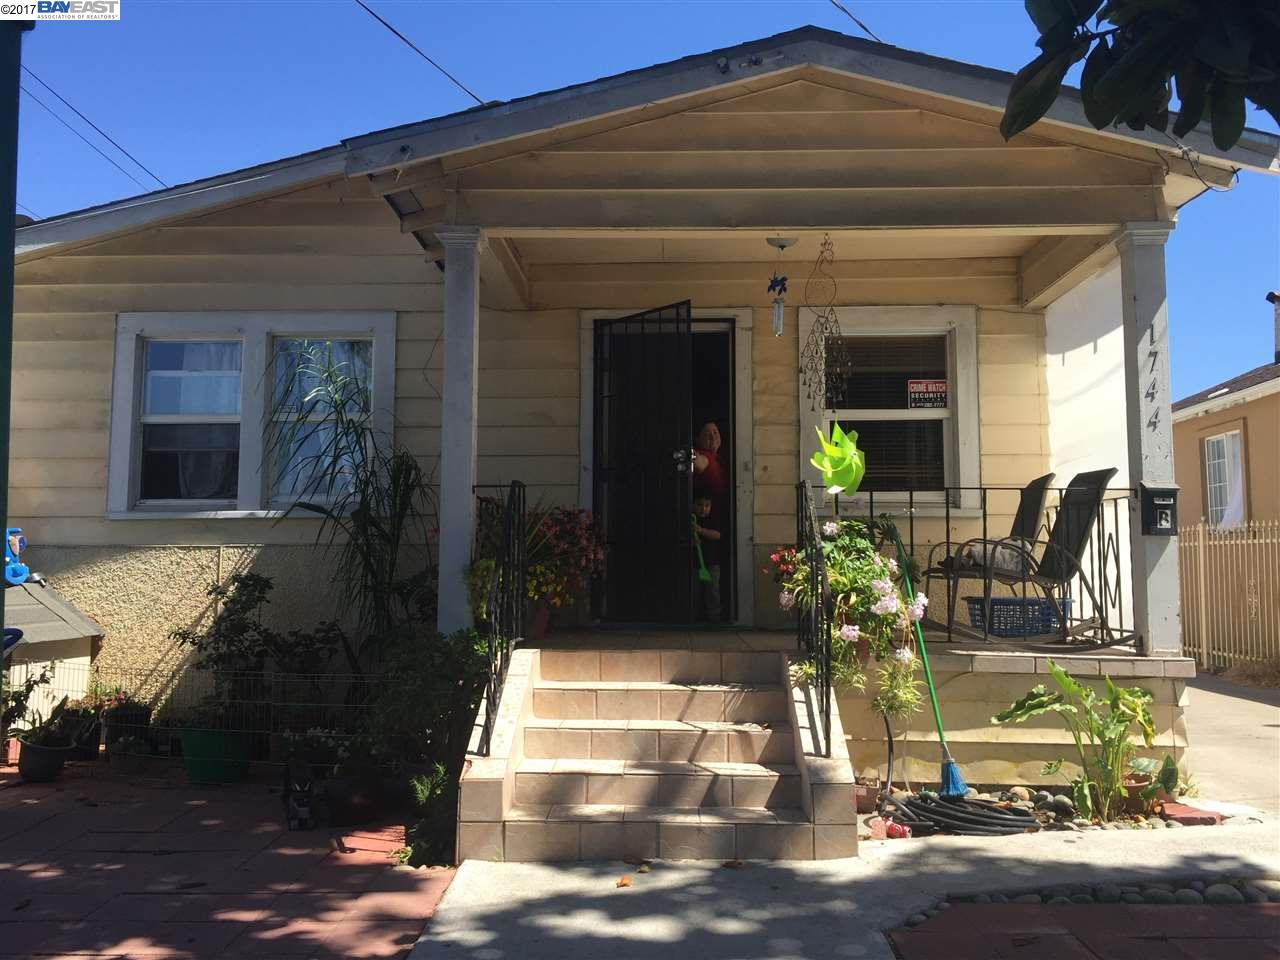 1744 85TH AVE, OAKLAND, CA 94621